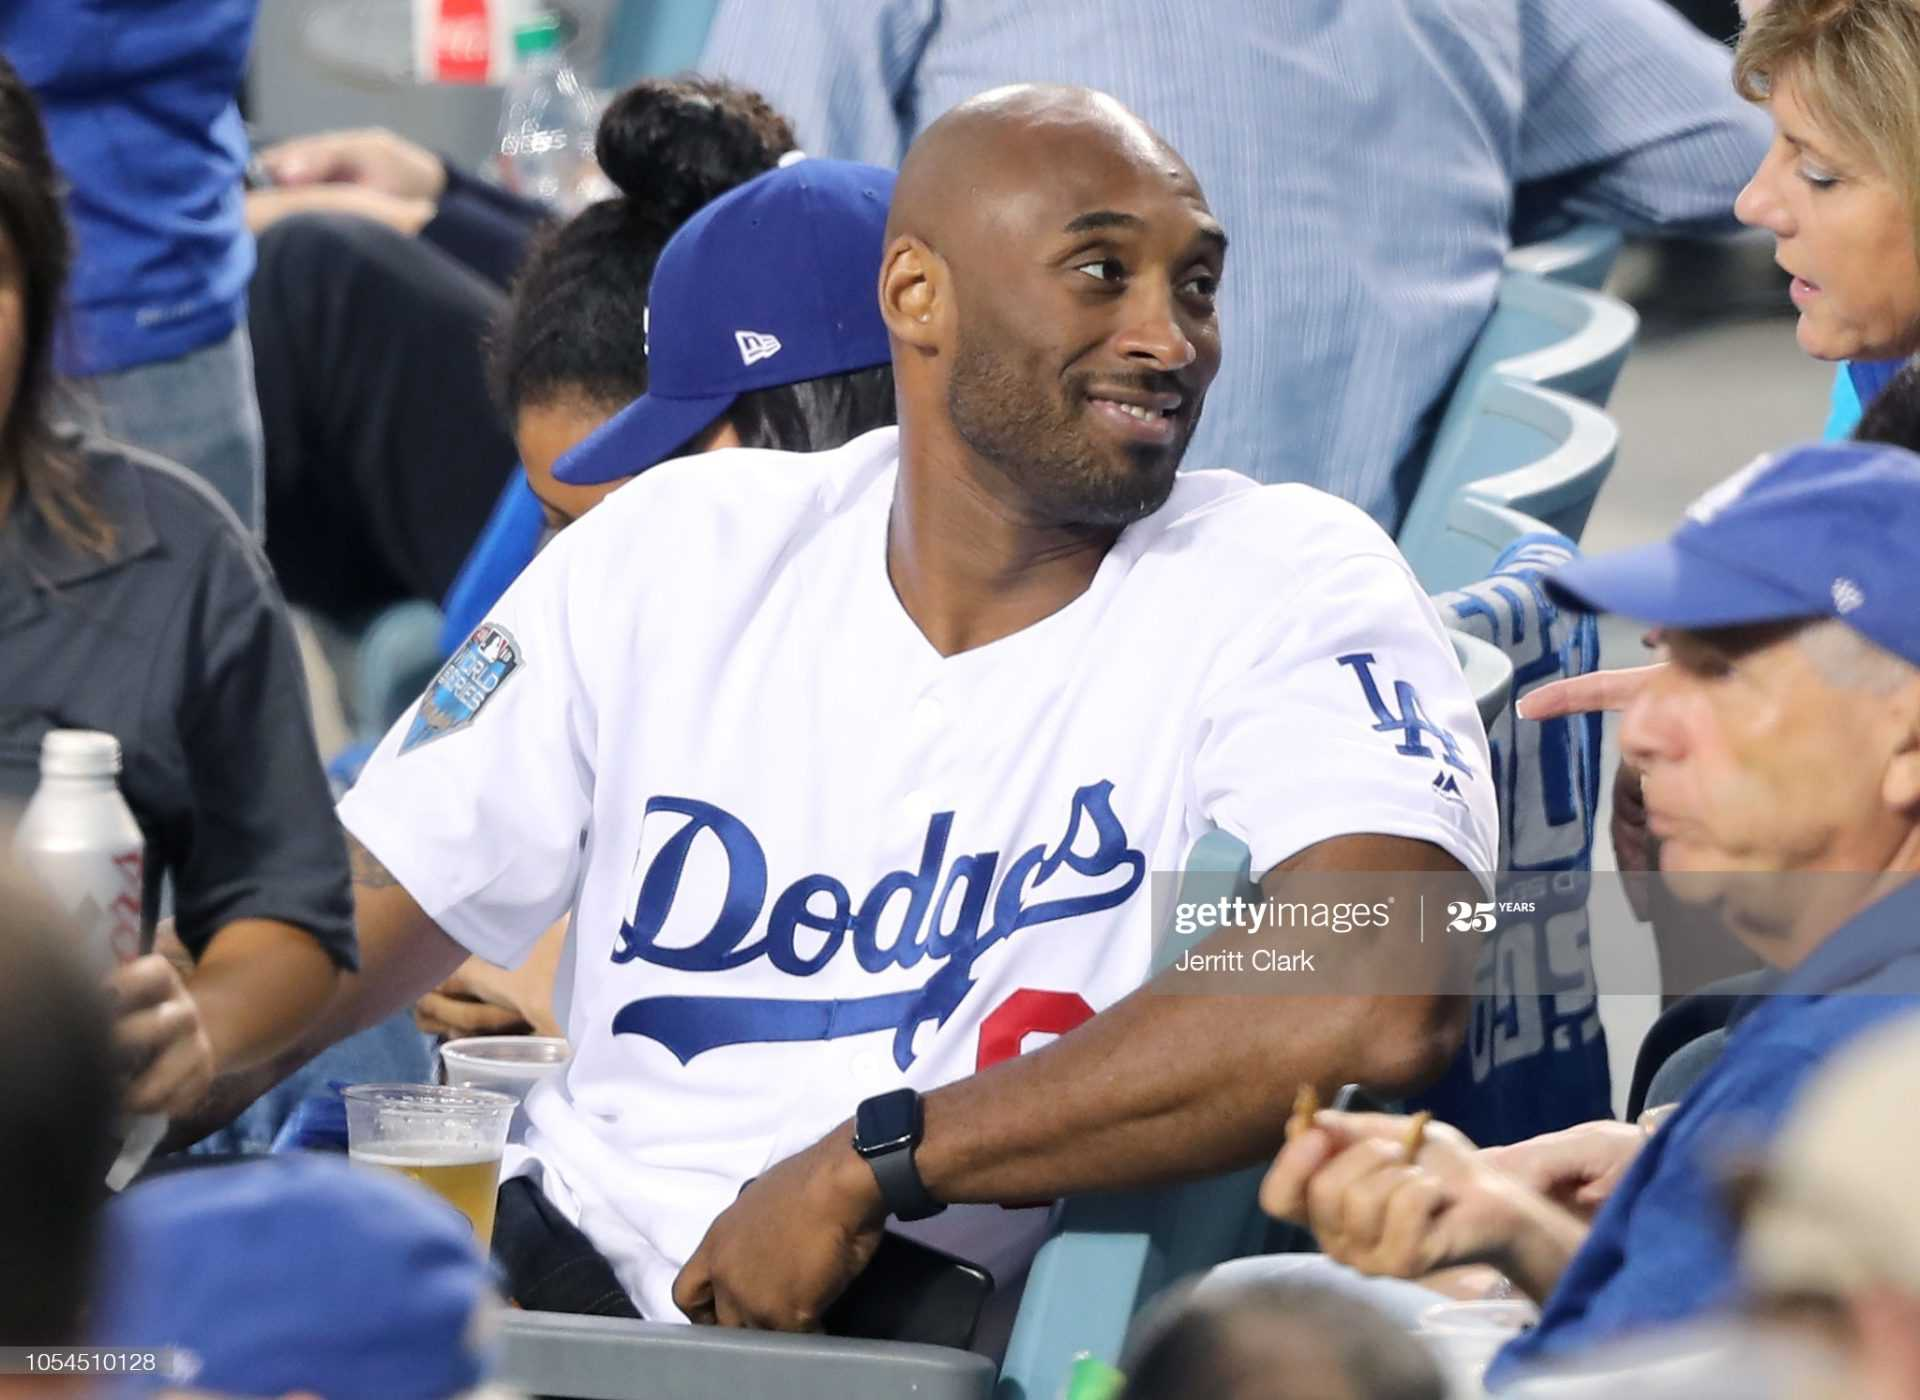 Titta: Lakers Kobe Bryant Pitching för LA Dodgers i denna Throwback-video